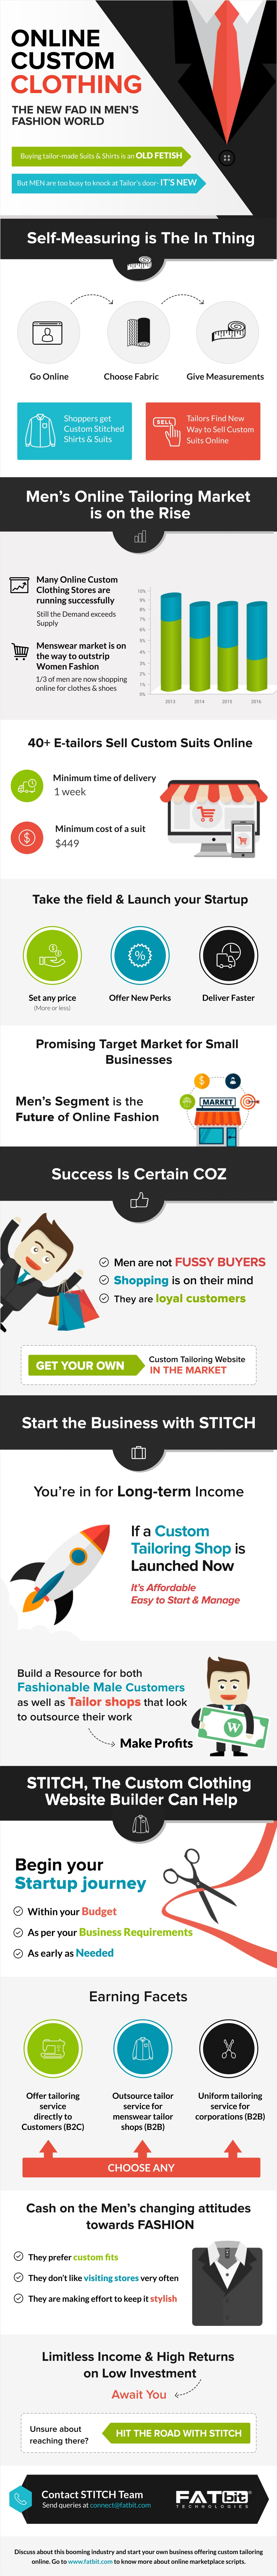 Online Custom Clothing Infographic